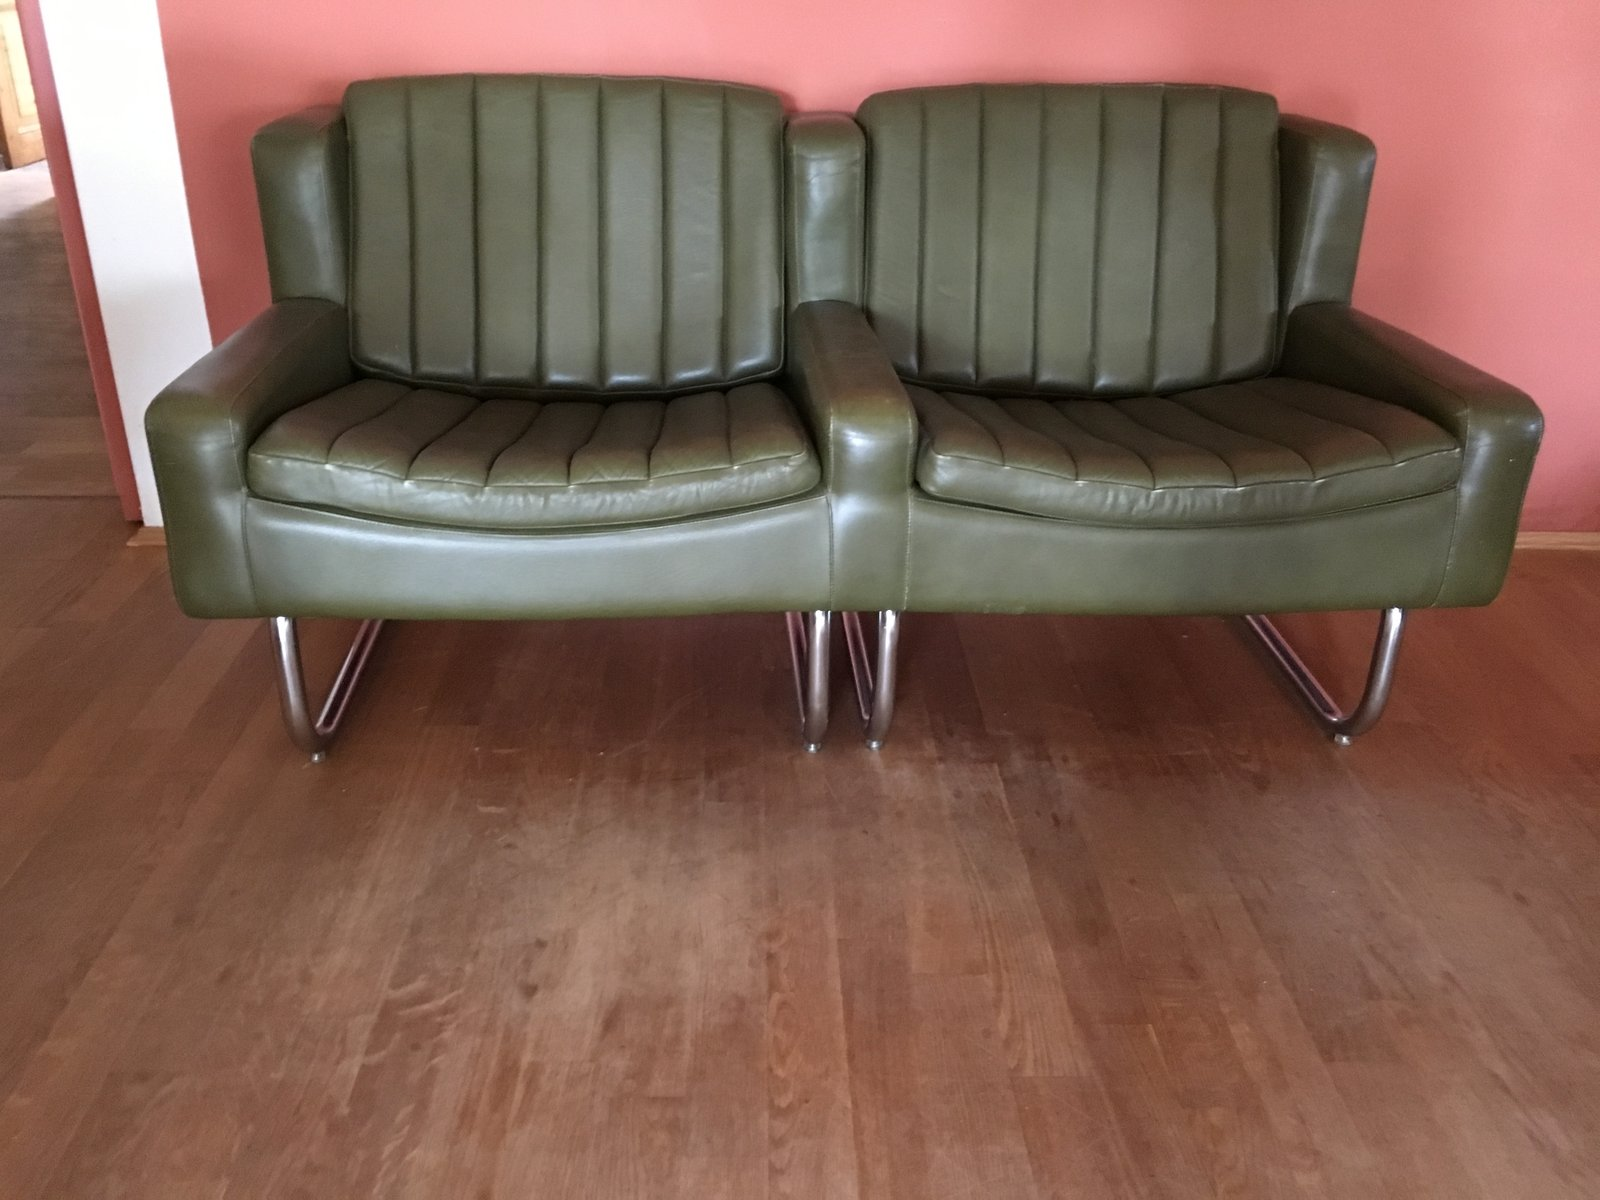 Vintage Cantilevered Chairs & Sofa Set from Asko for sale at Pamono